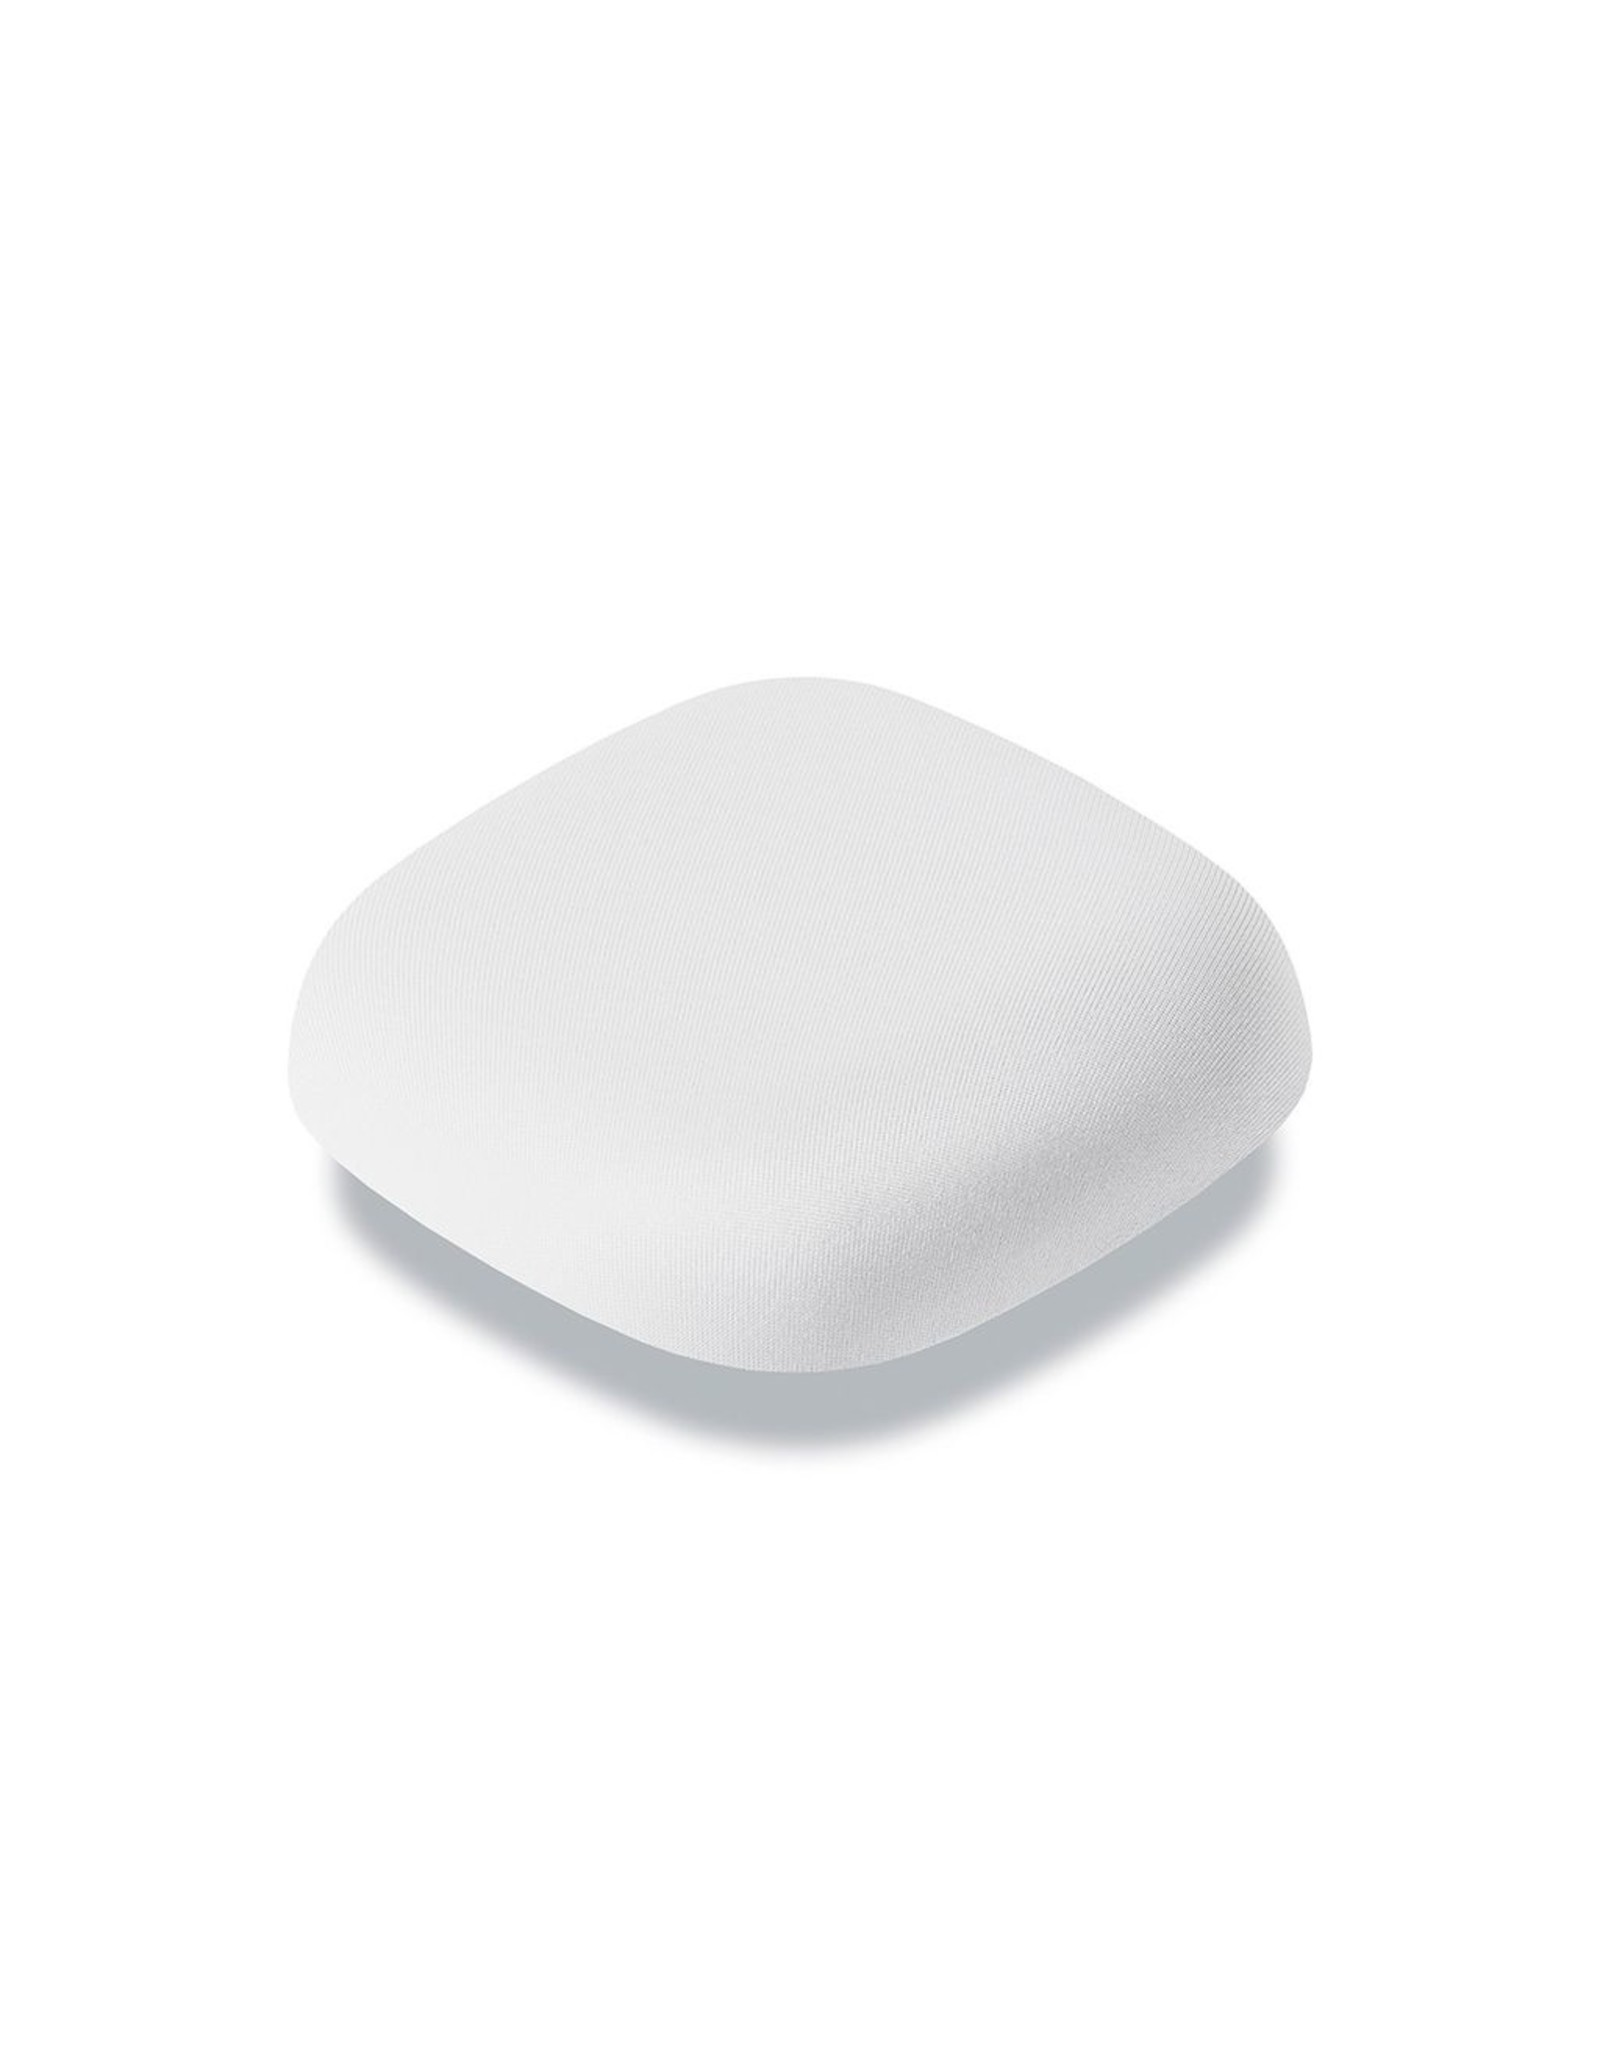 JALO KUPU 10 SMOKE ALARM FABRIC WHITE